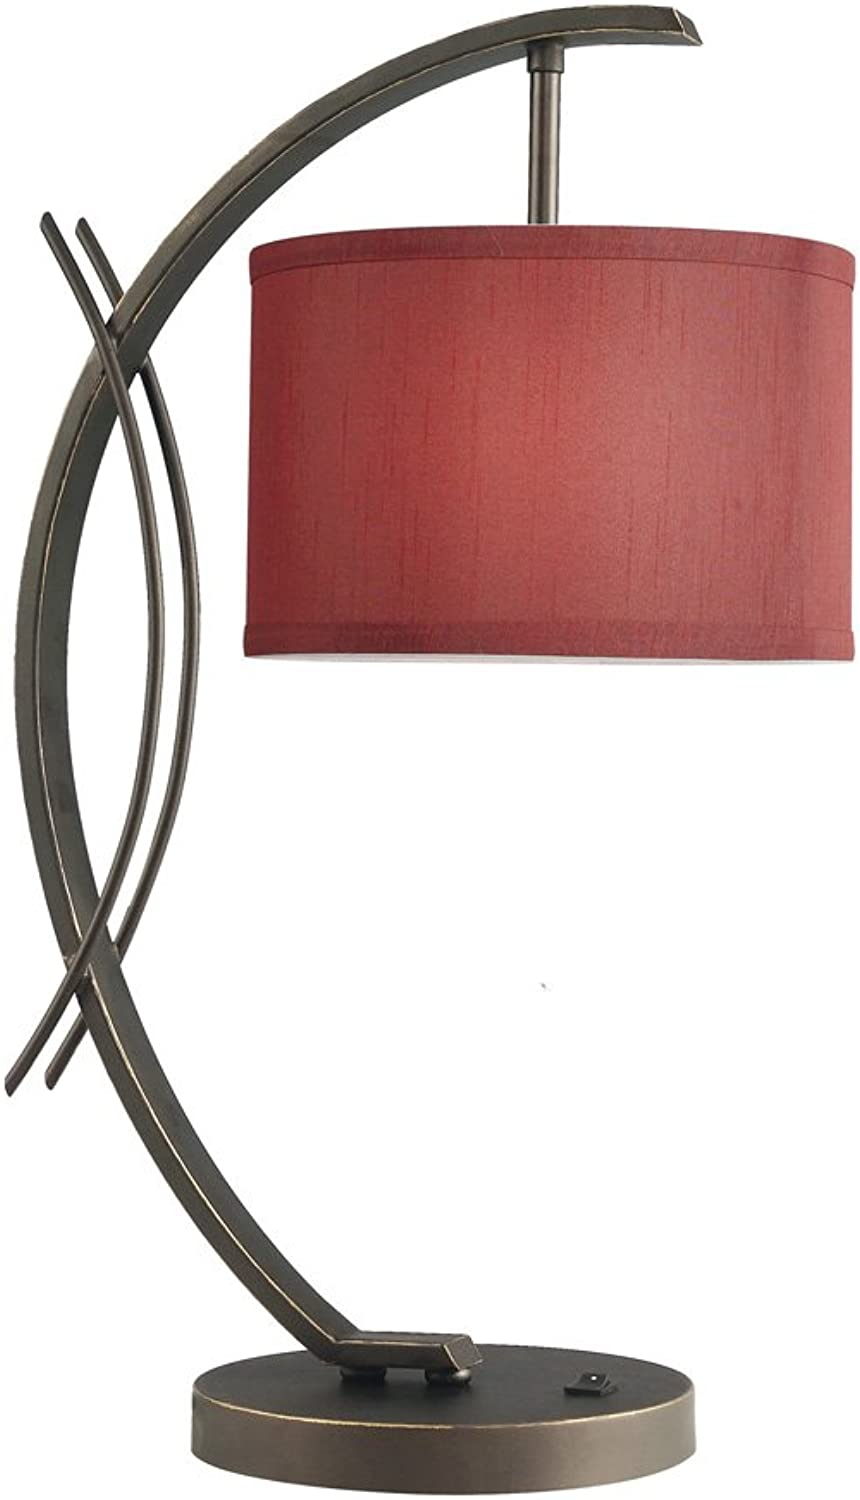 Woodbridge Lighting 13481MEB-S10803 Eclipse 1-Light Table Lamp, 7-1 2-Inch by 21-3 4-Inch, Metallic Bronze